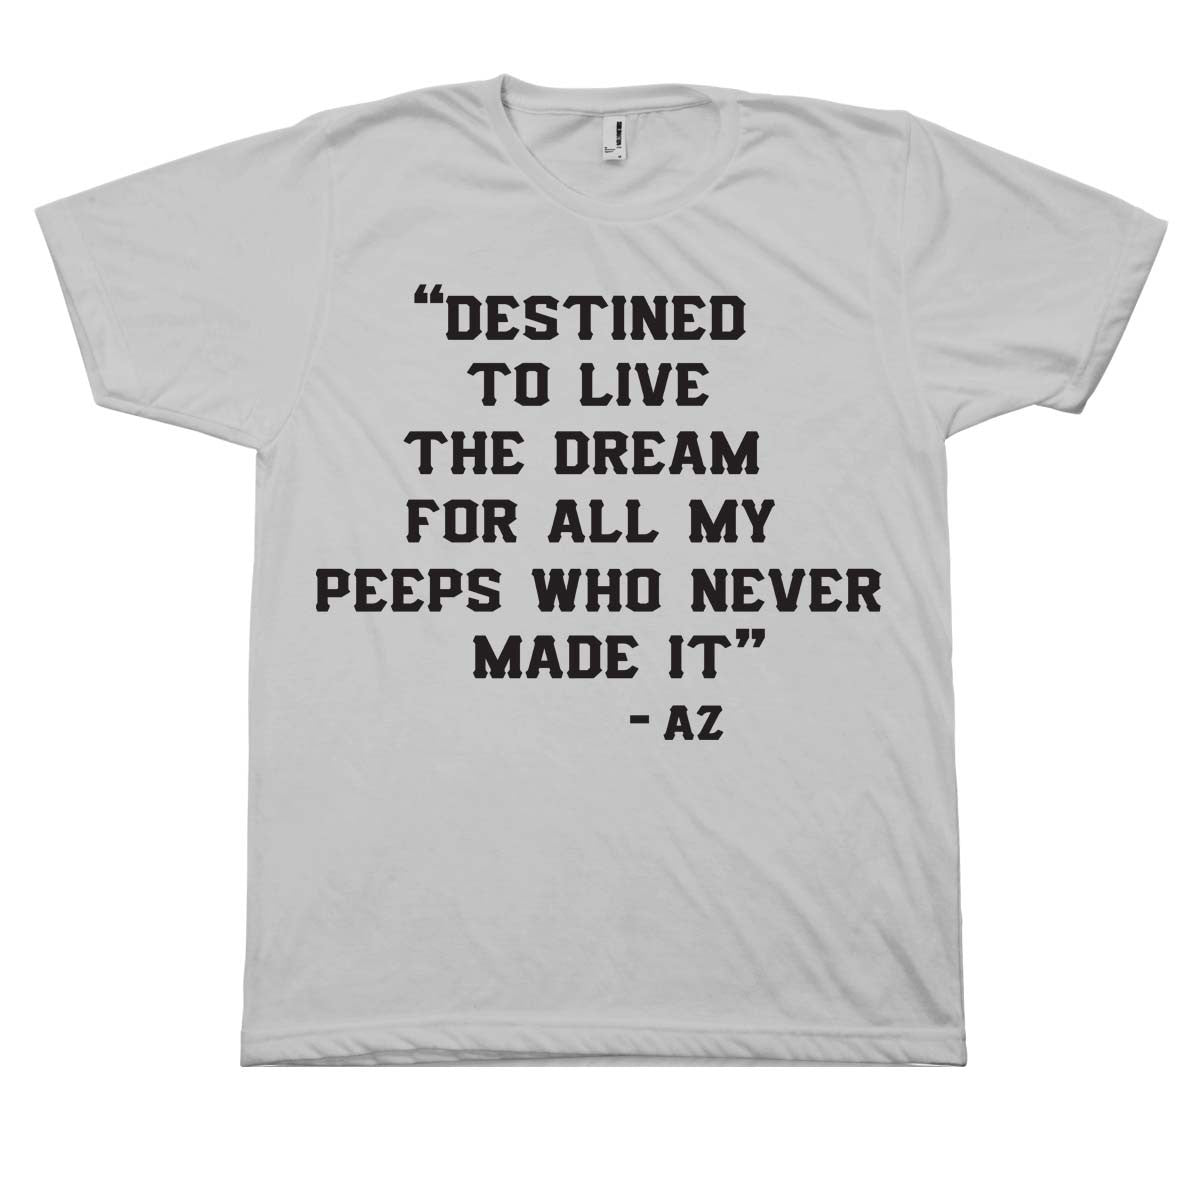 Classic Hip Hop AZ Quote T-Shirt